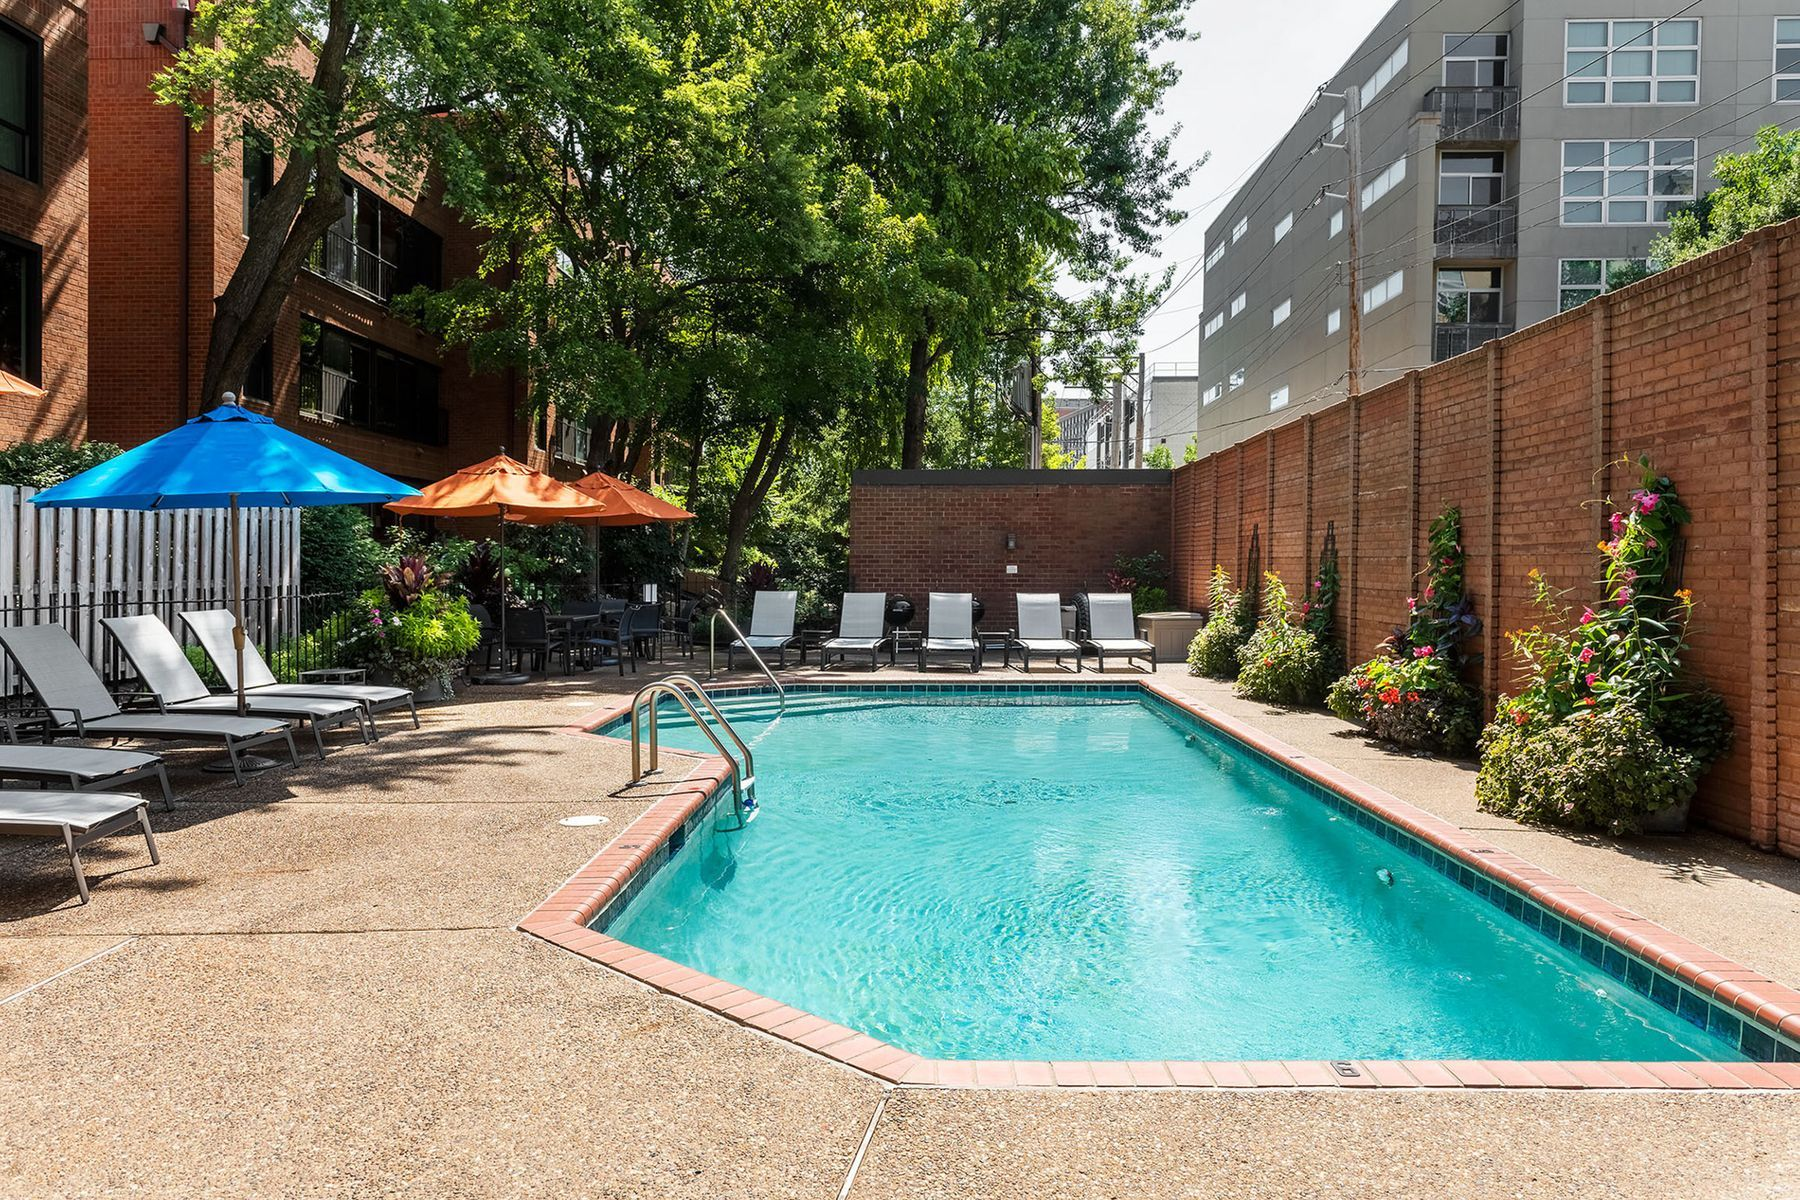 Additional photo for property listing at Wexford Condo 4540 Laclede Avenue 107 St. Louis, Missouri 63108 United States